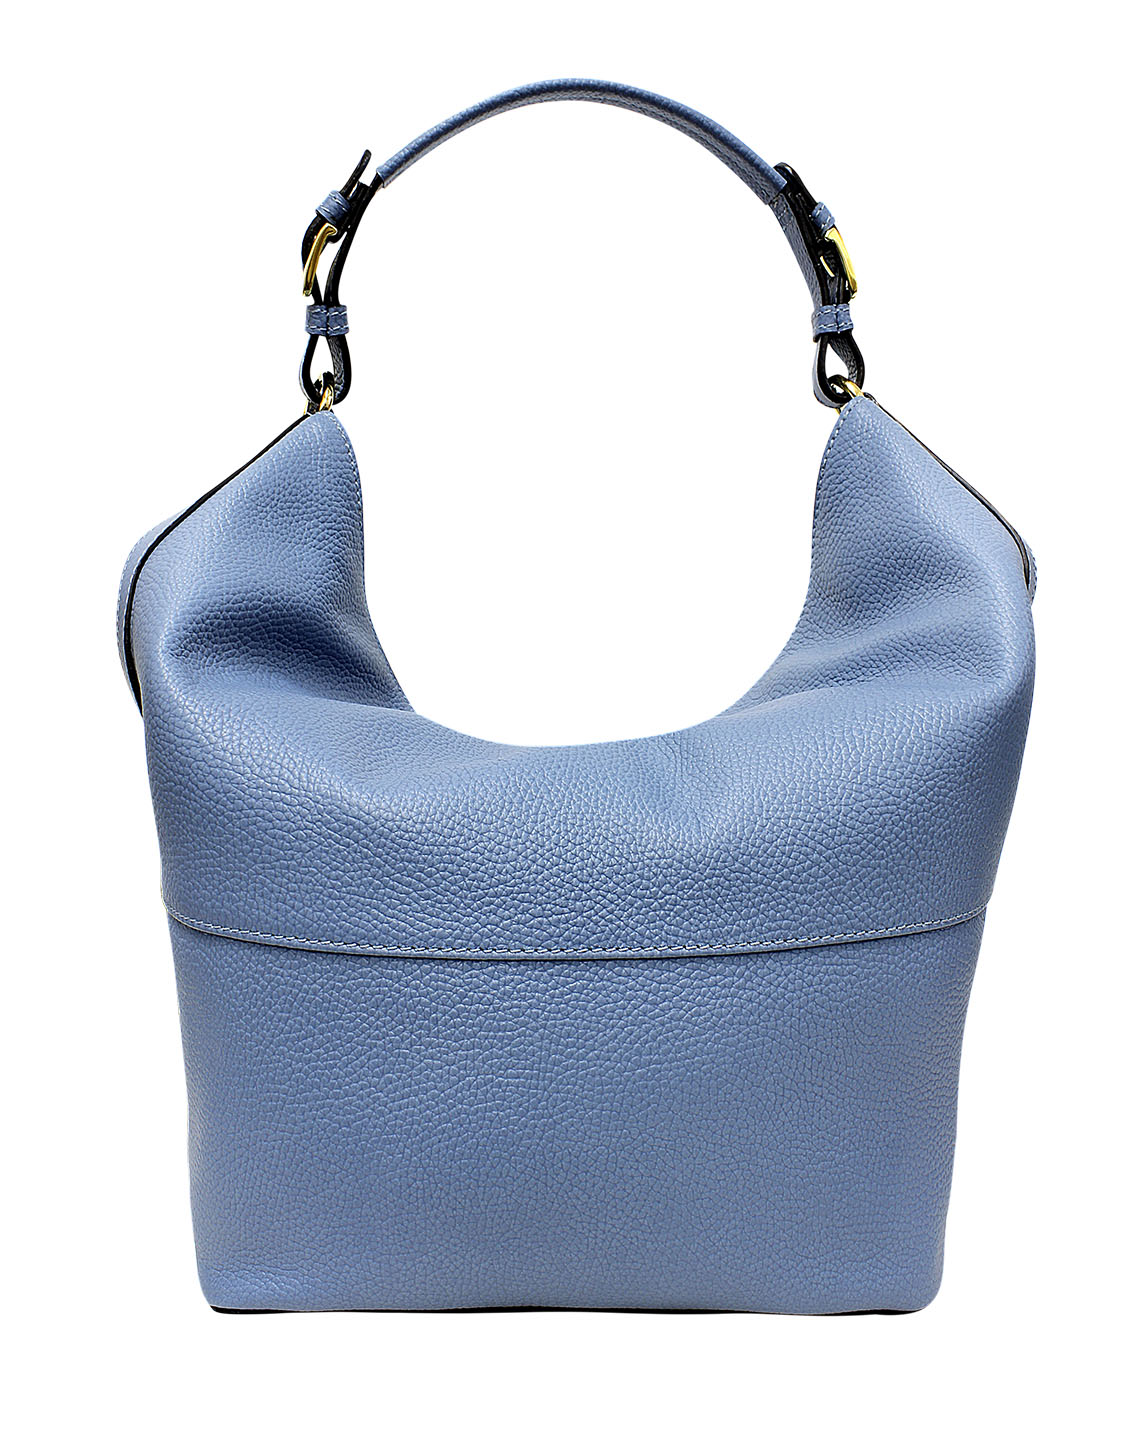 Cartera Tote Bag DS-2627 Color Celeste